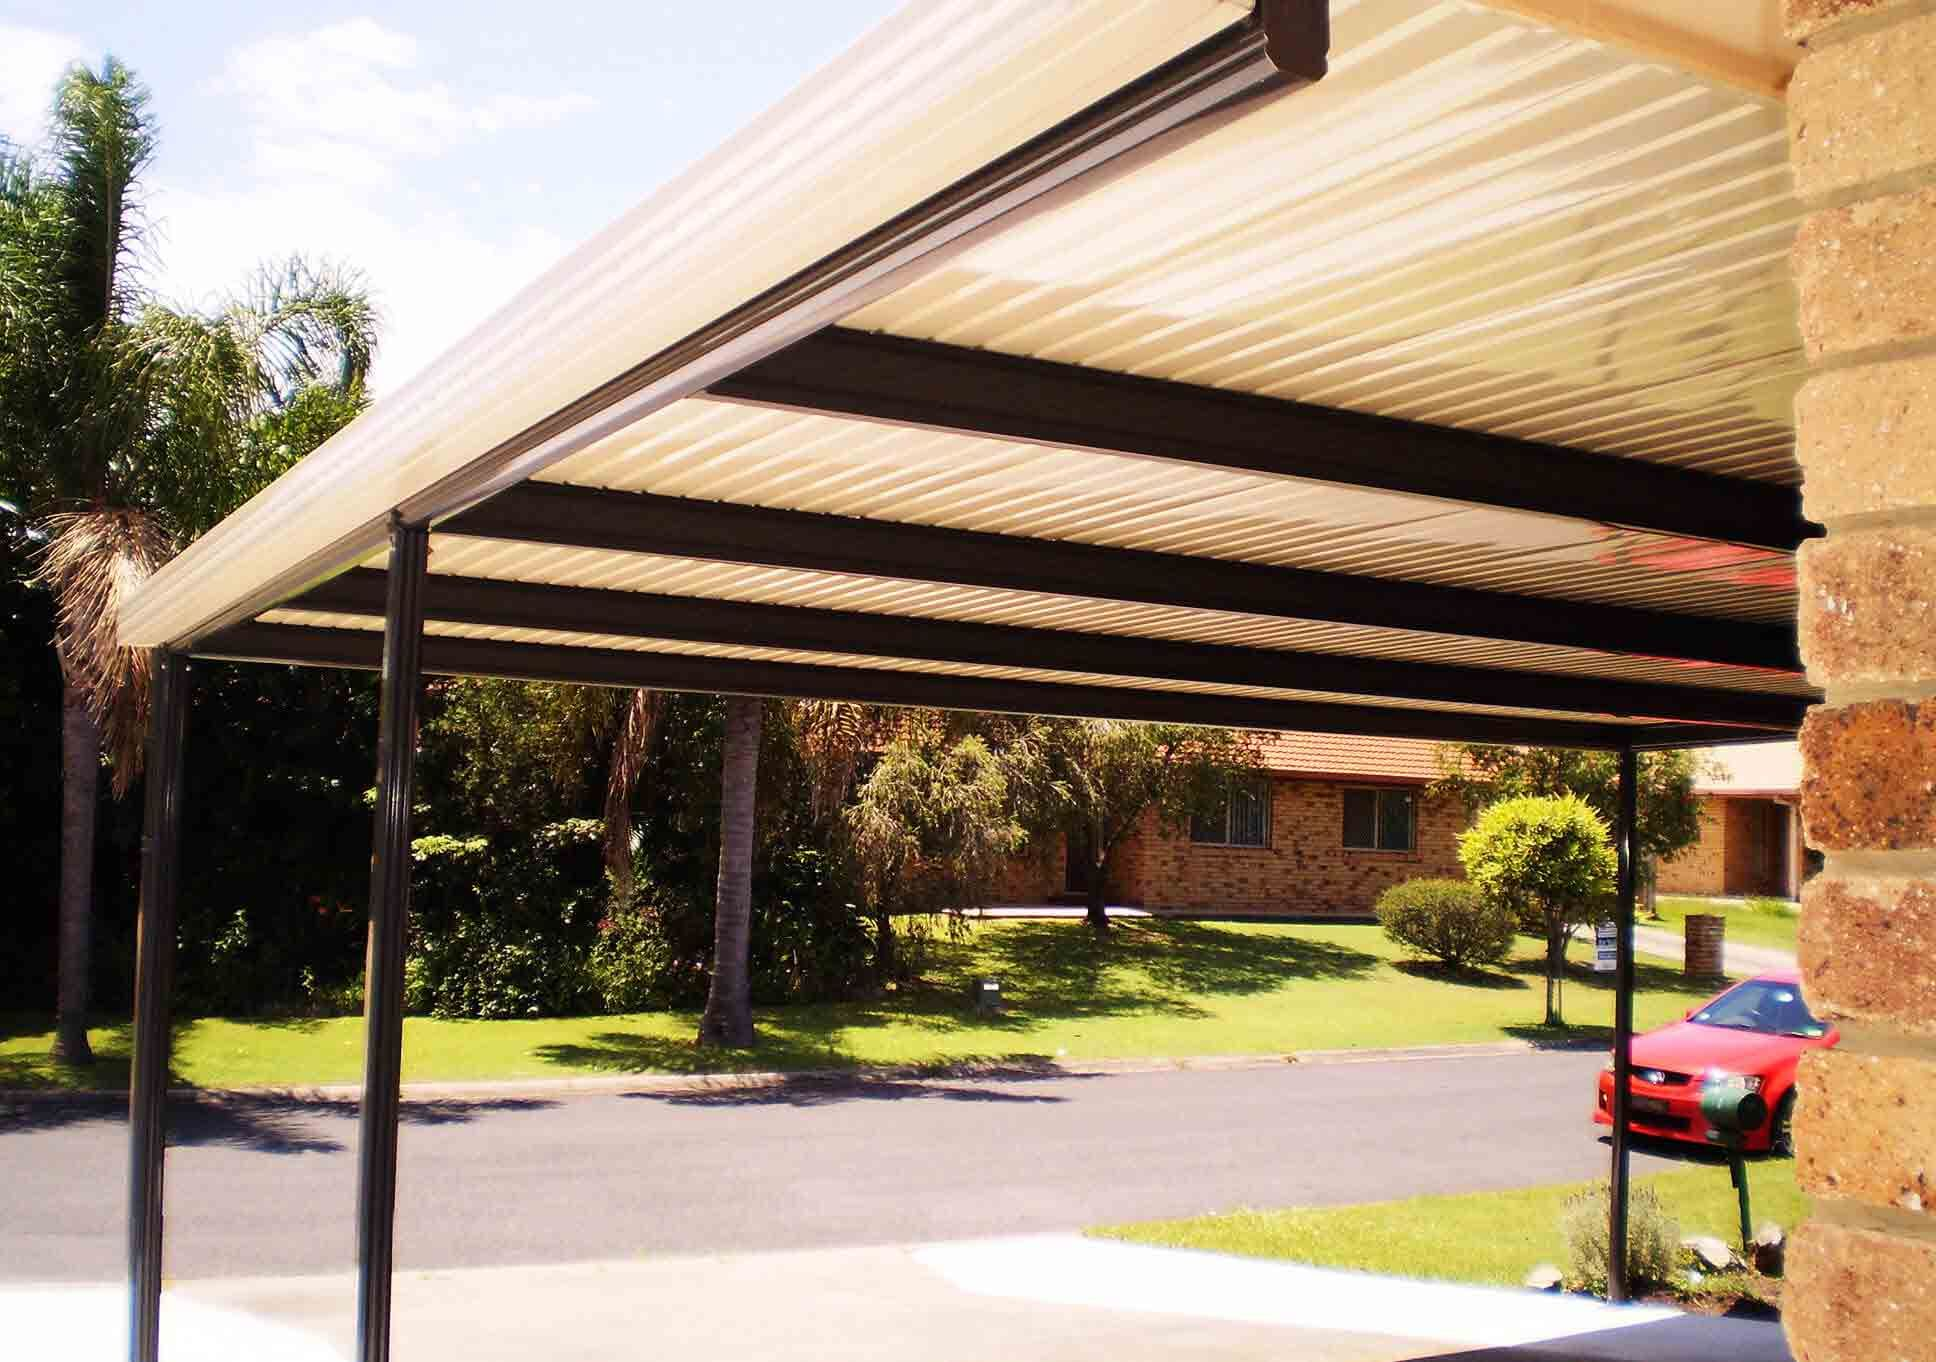 Brisbane Carport Carport, Carport prices, Portable carport